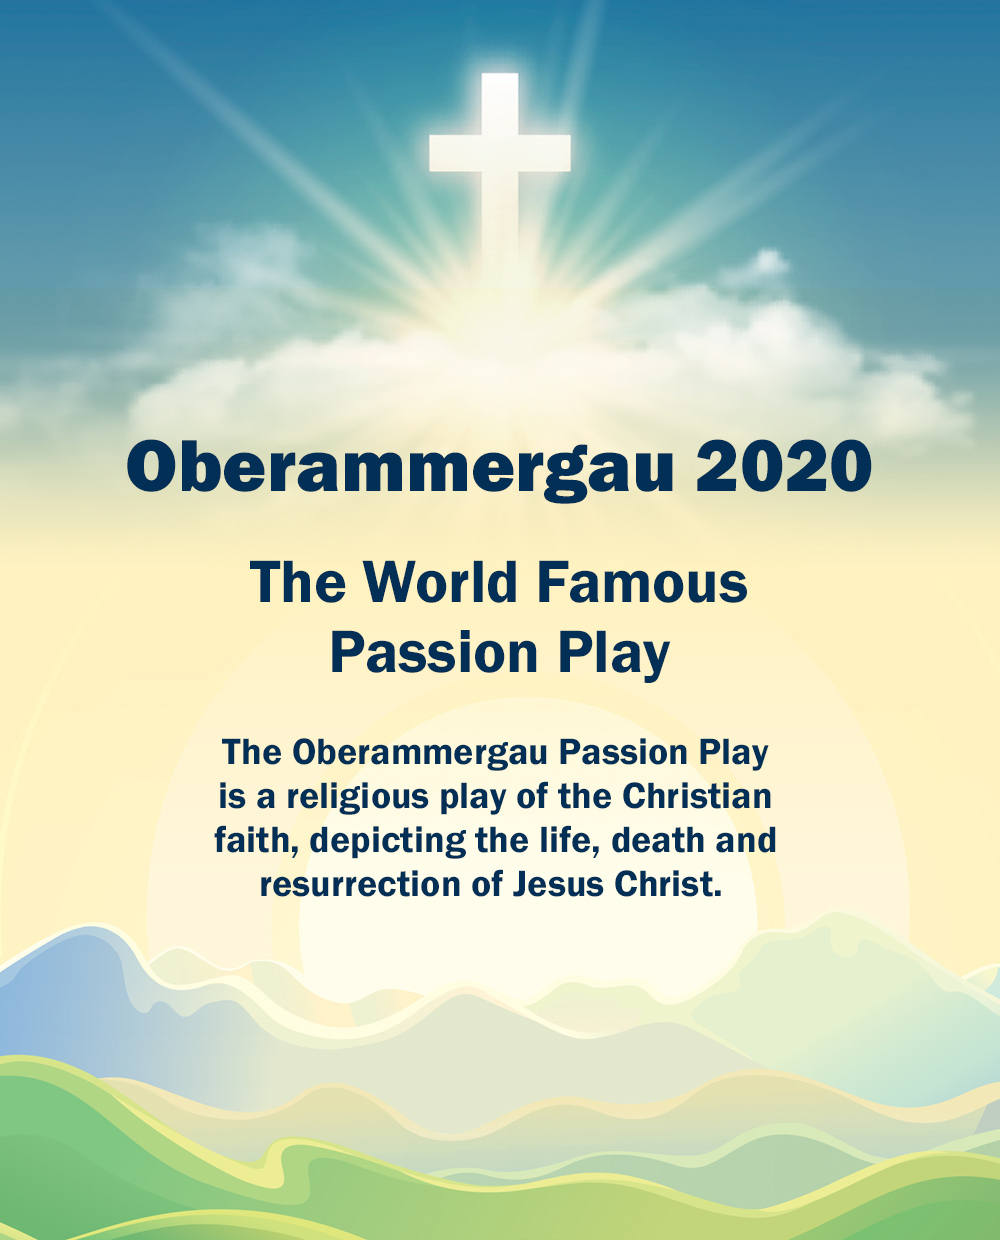 Oberammergau 2020 - The world famous passion play